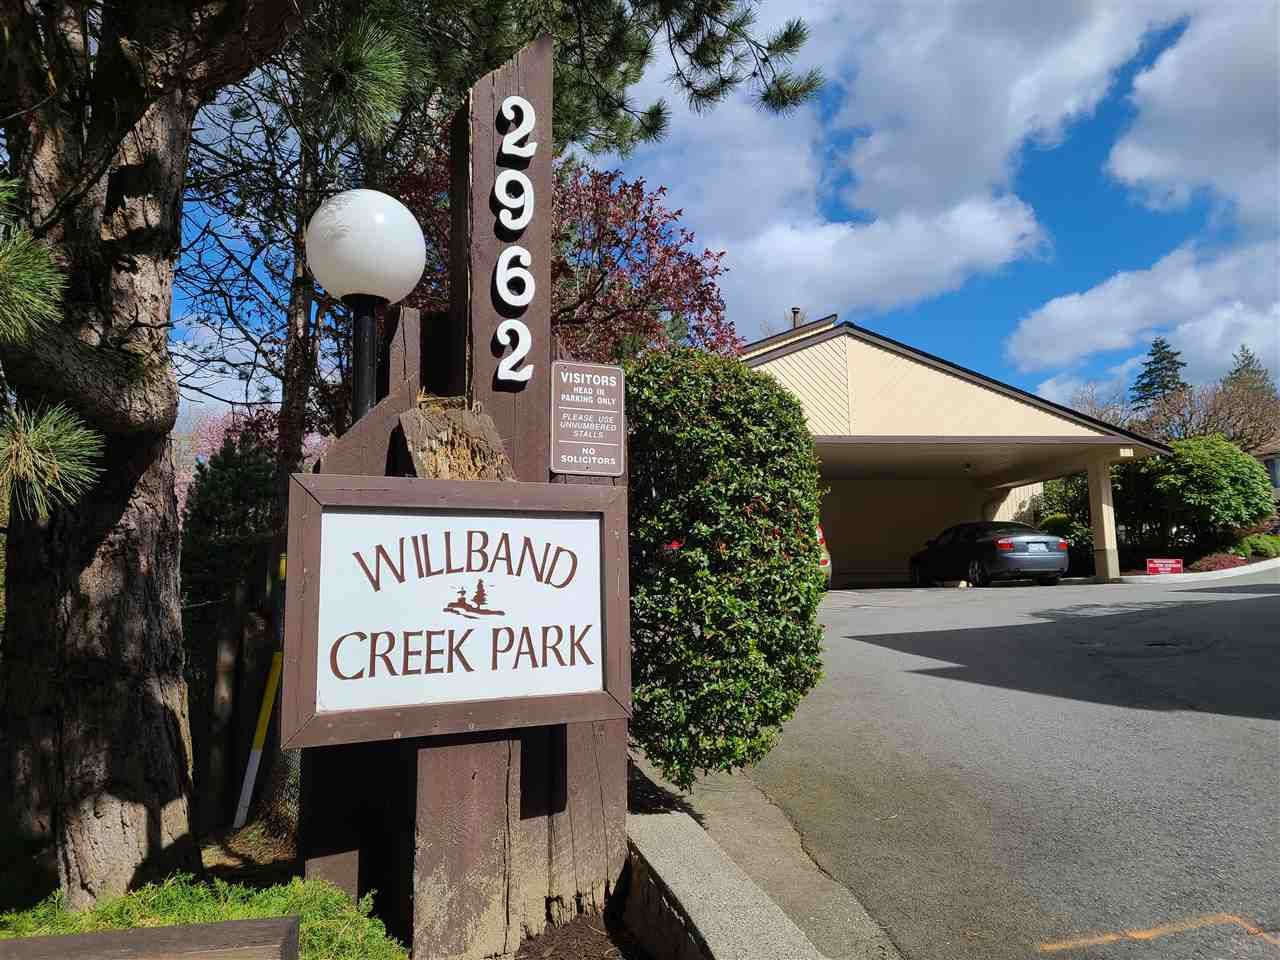 """Main Photo: 24 2962 NELSON Place in Abbotsford: Central Abbotsford Townhouse for sale in """"Willband Creek Park"""" : MLS®# R2566695"""